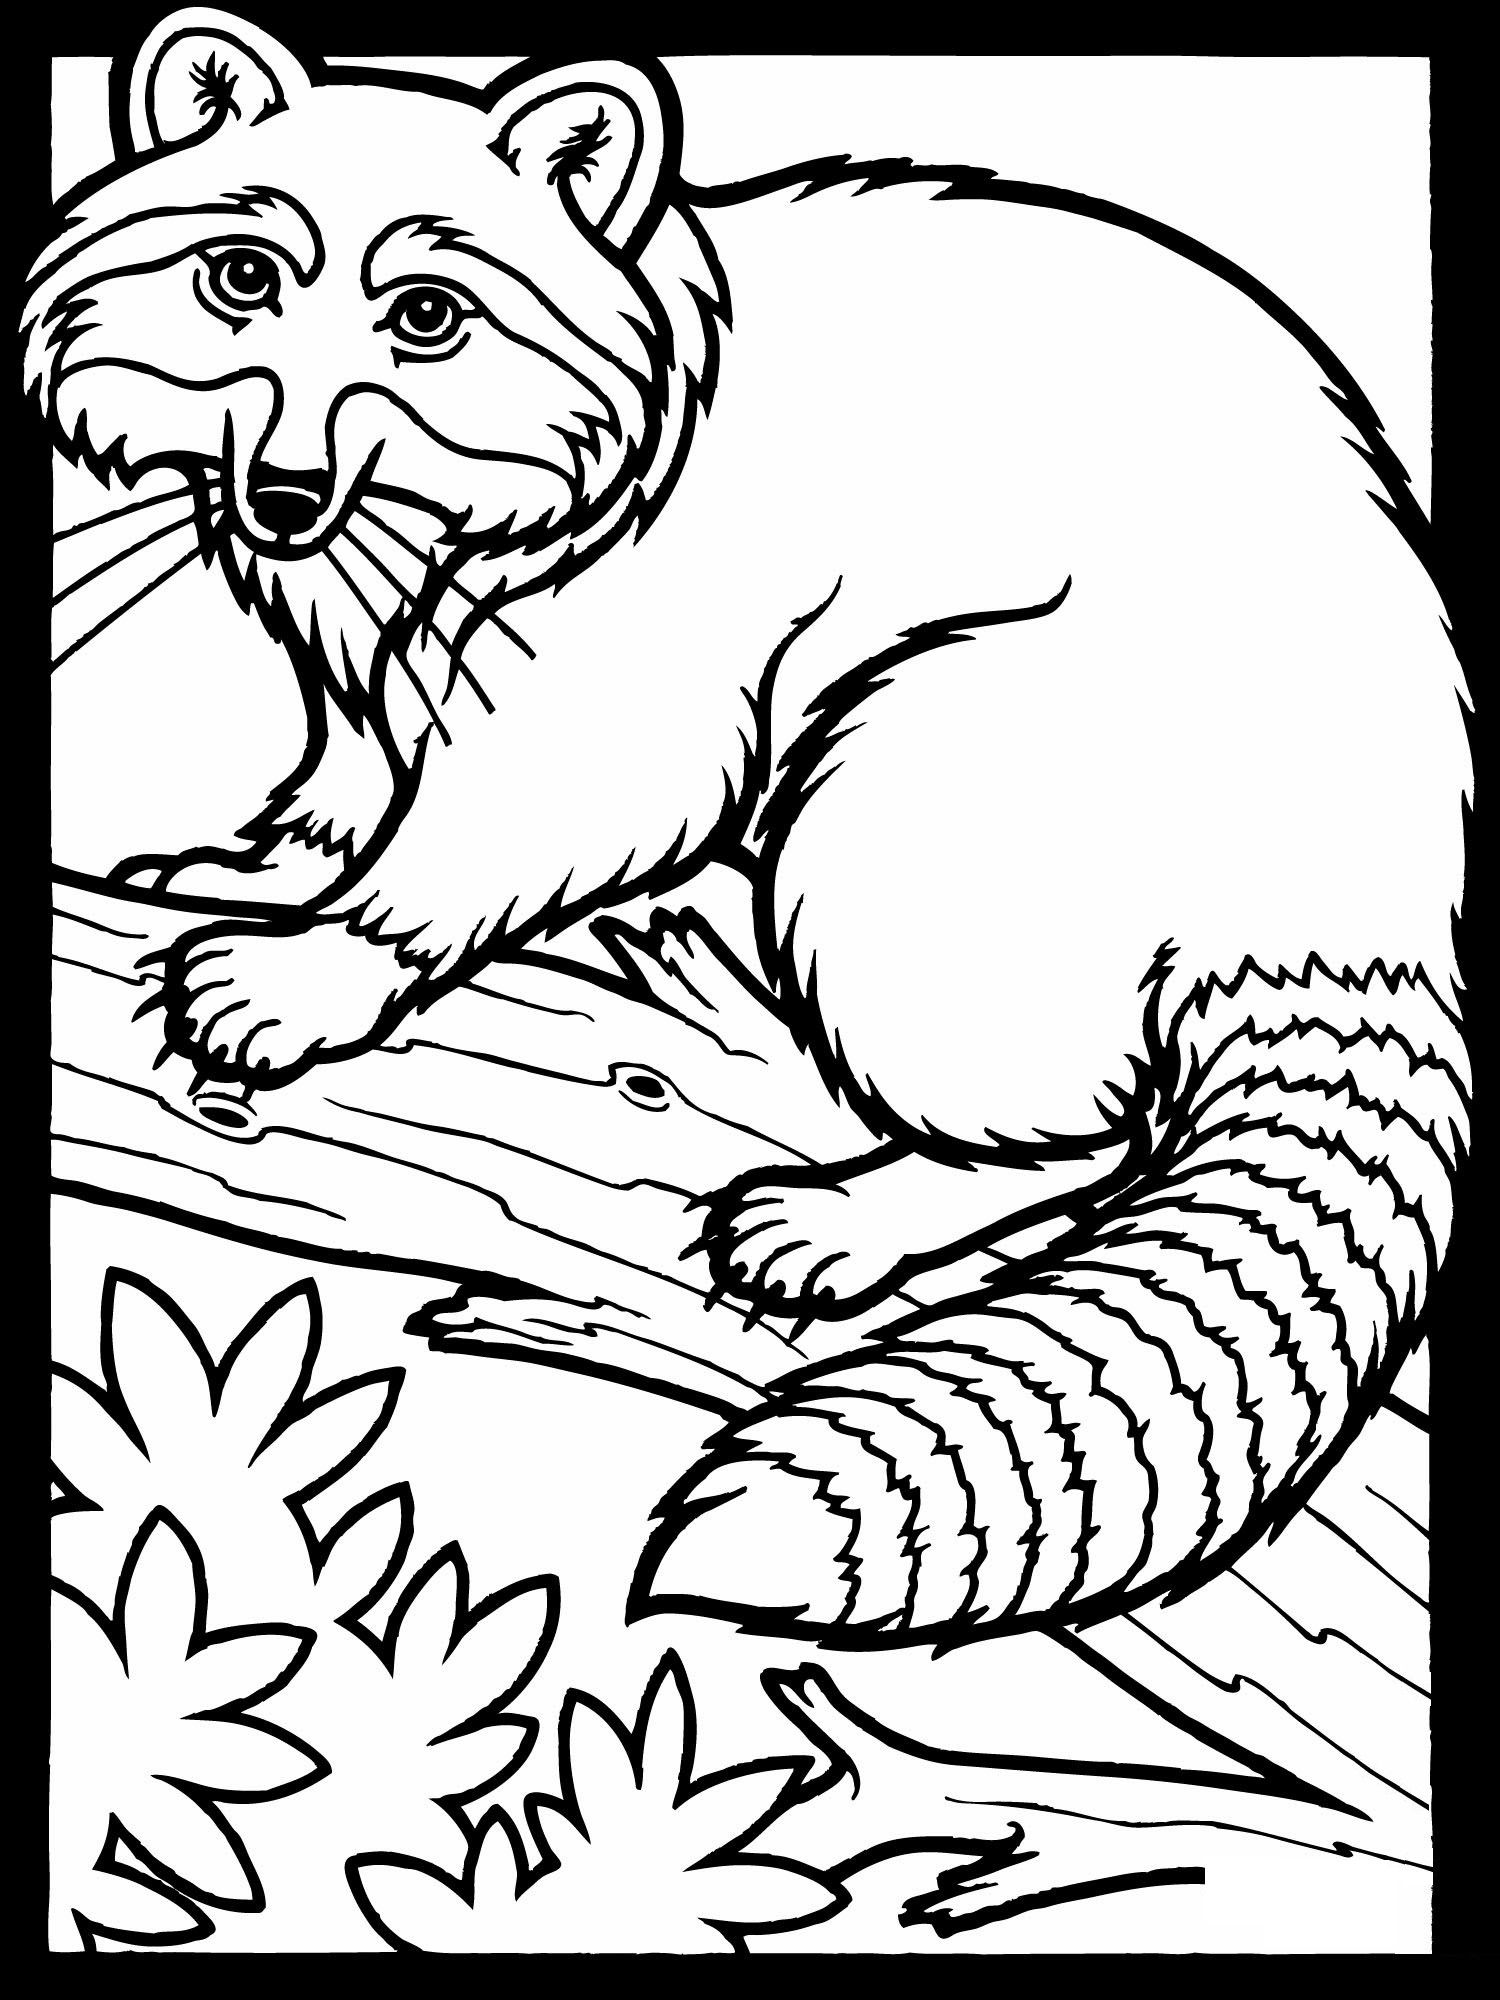 Free Printable Raccoon Coloring Pages For Kids | Creation ...